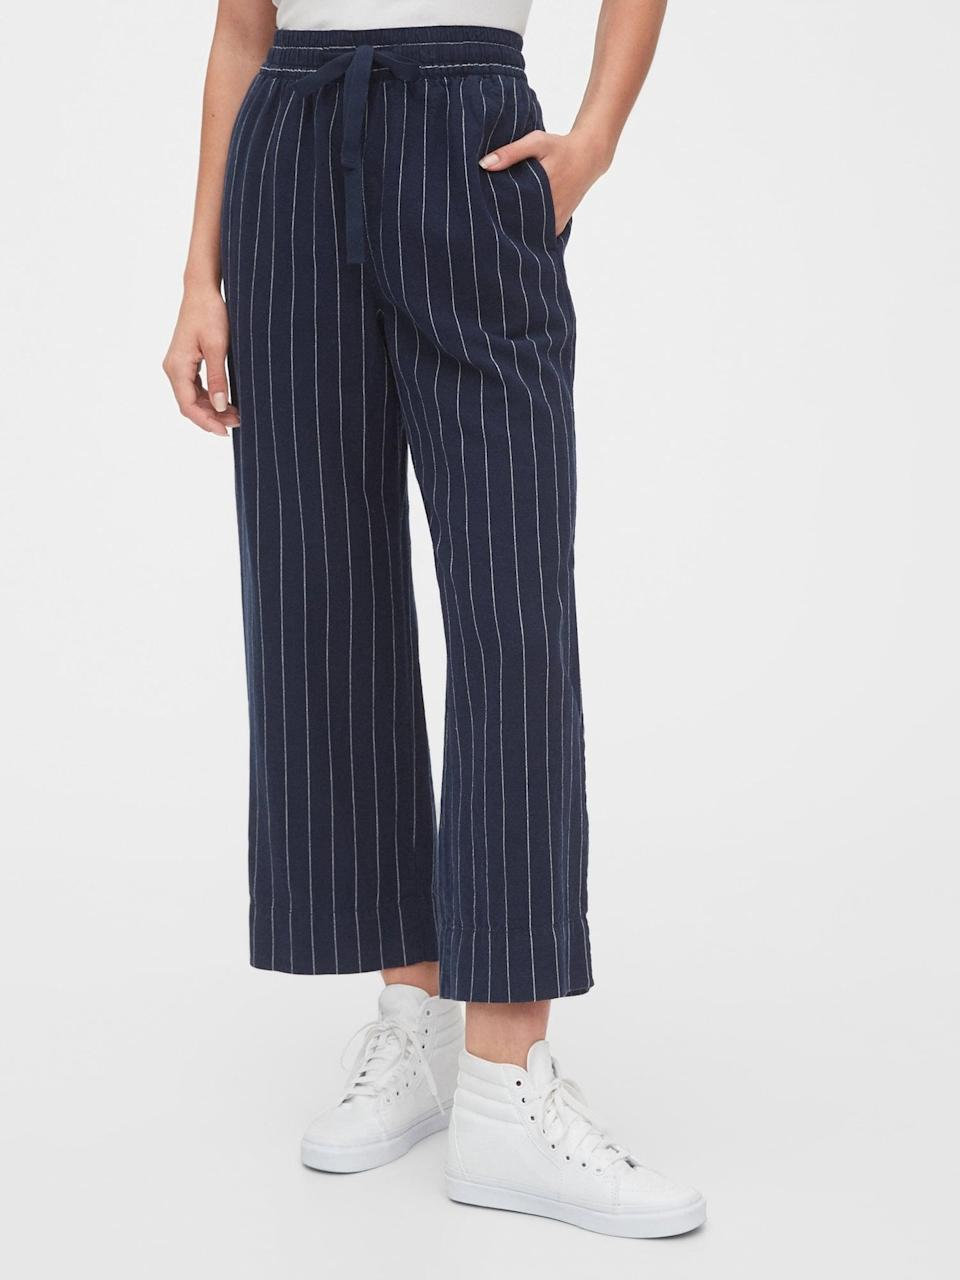 <p>These <span>Gap Linen Wide-Leg Pants</span> ($45, originally $70) would look great with sneakers and a tee.</p>